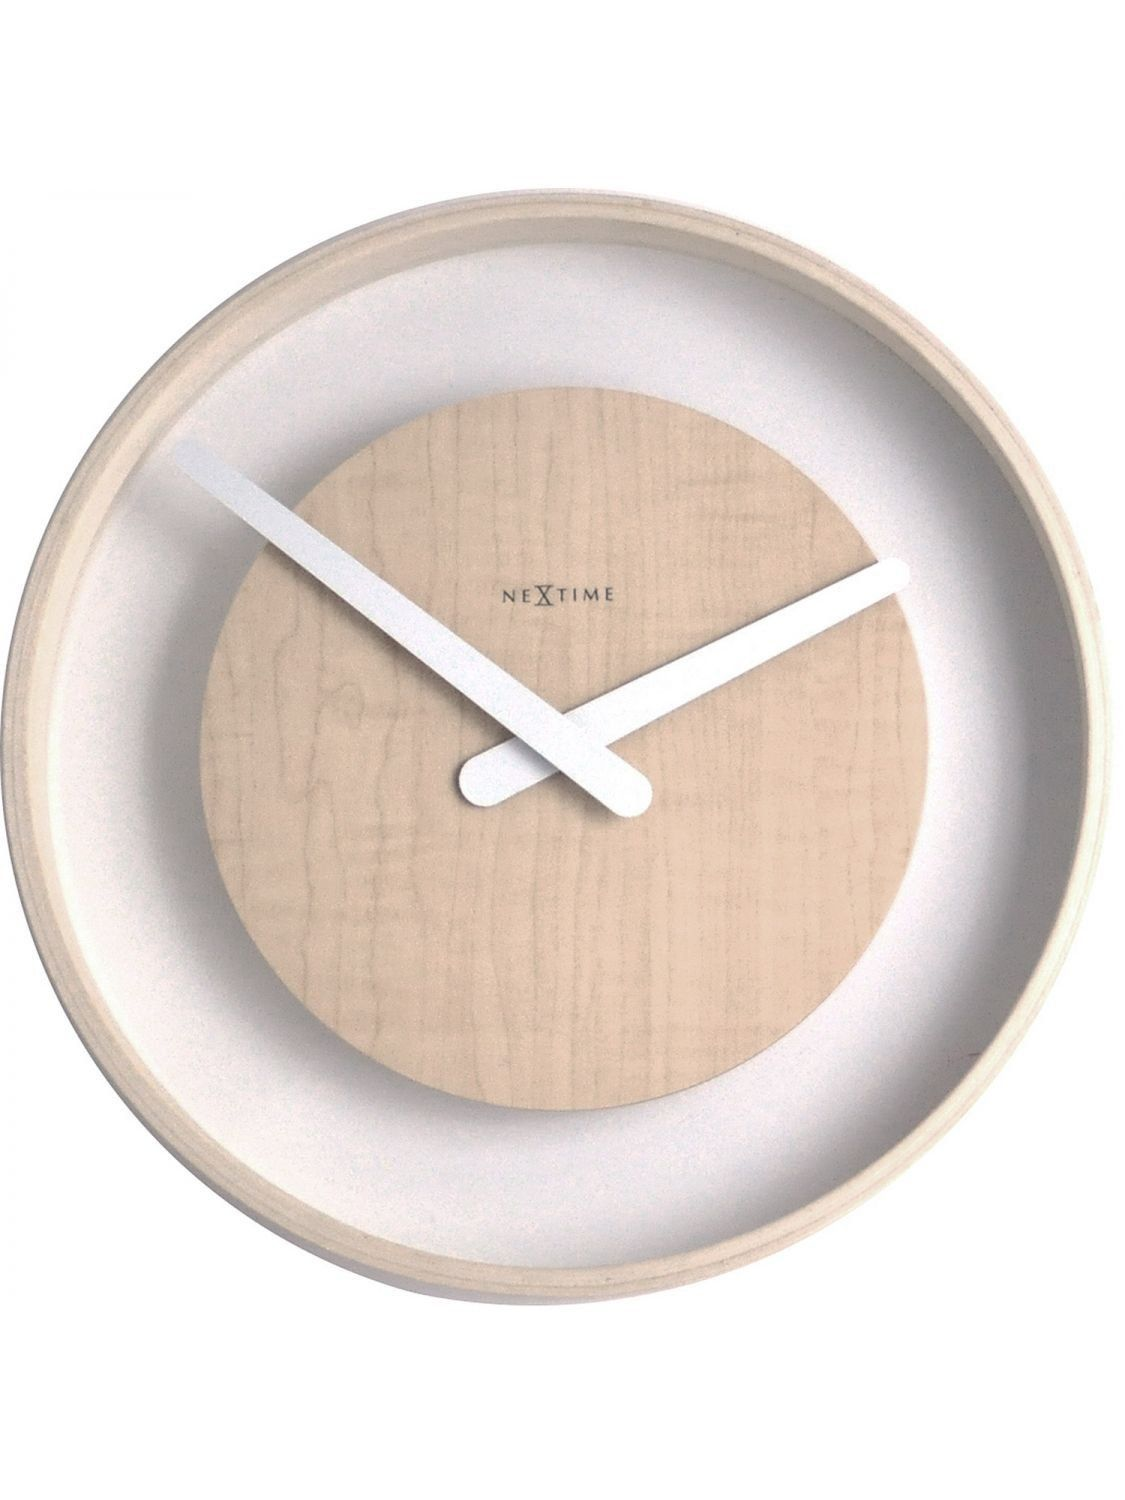 Wood loop wall clock design by nextime madera diseo pinterest wood loop wall clock design by nextime amipublicfo Choice Image